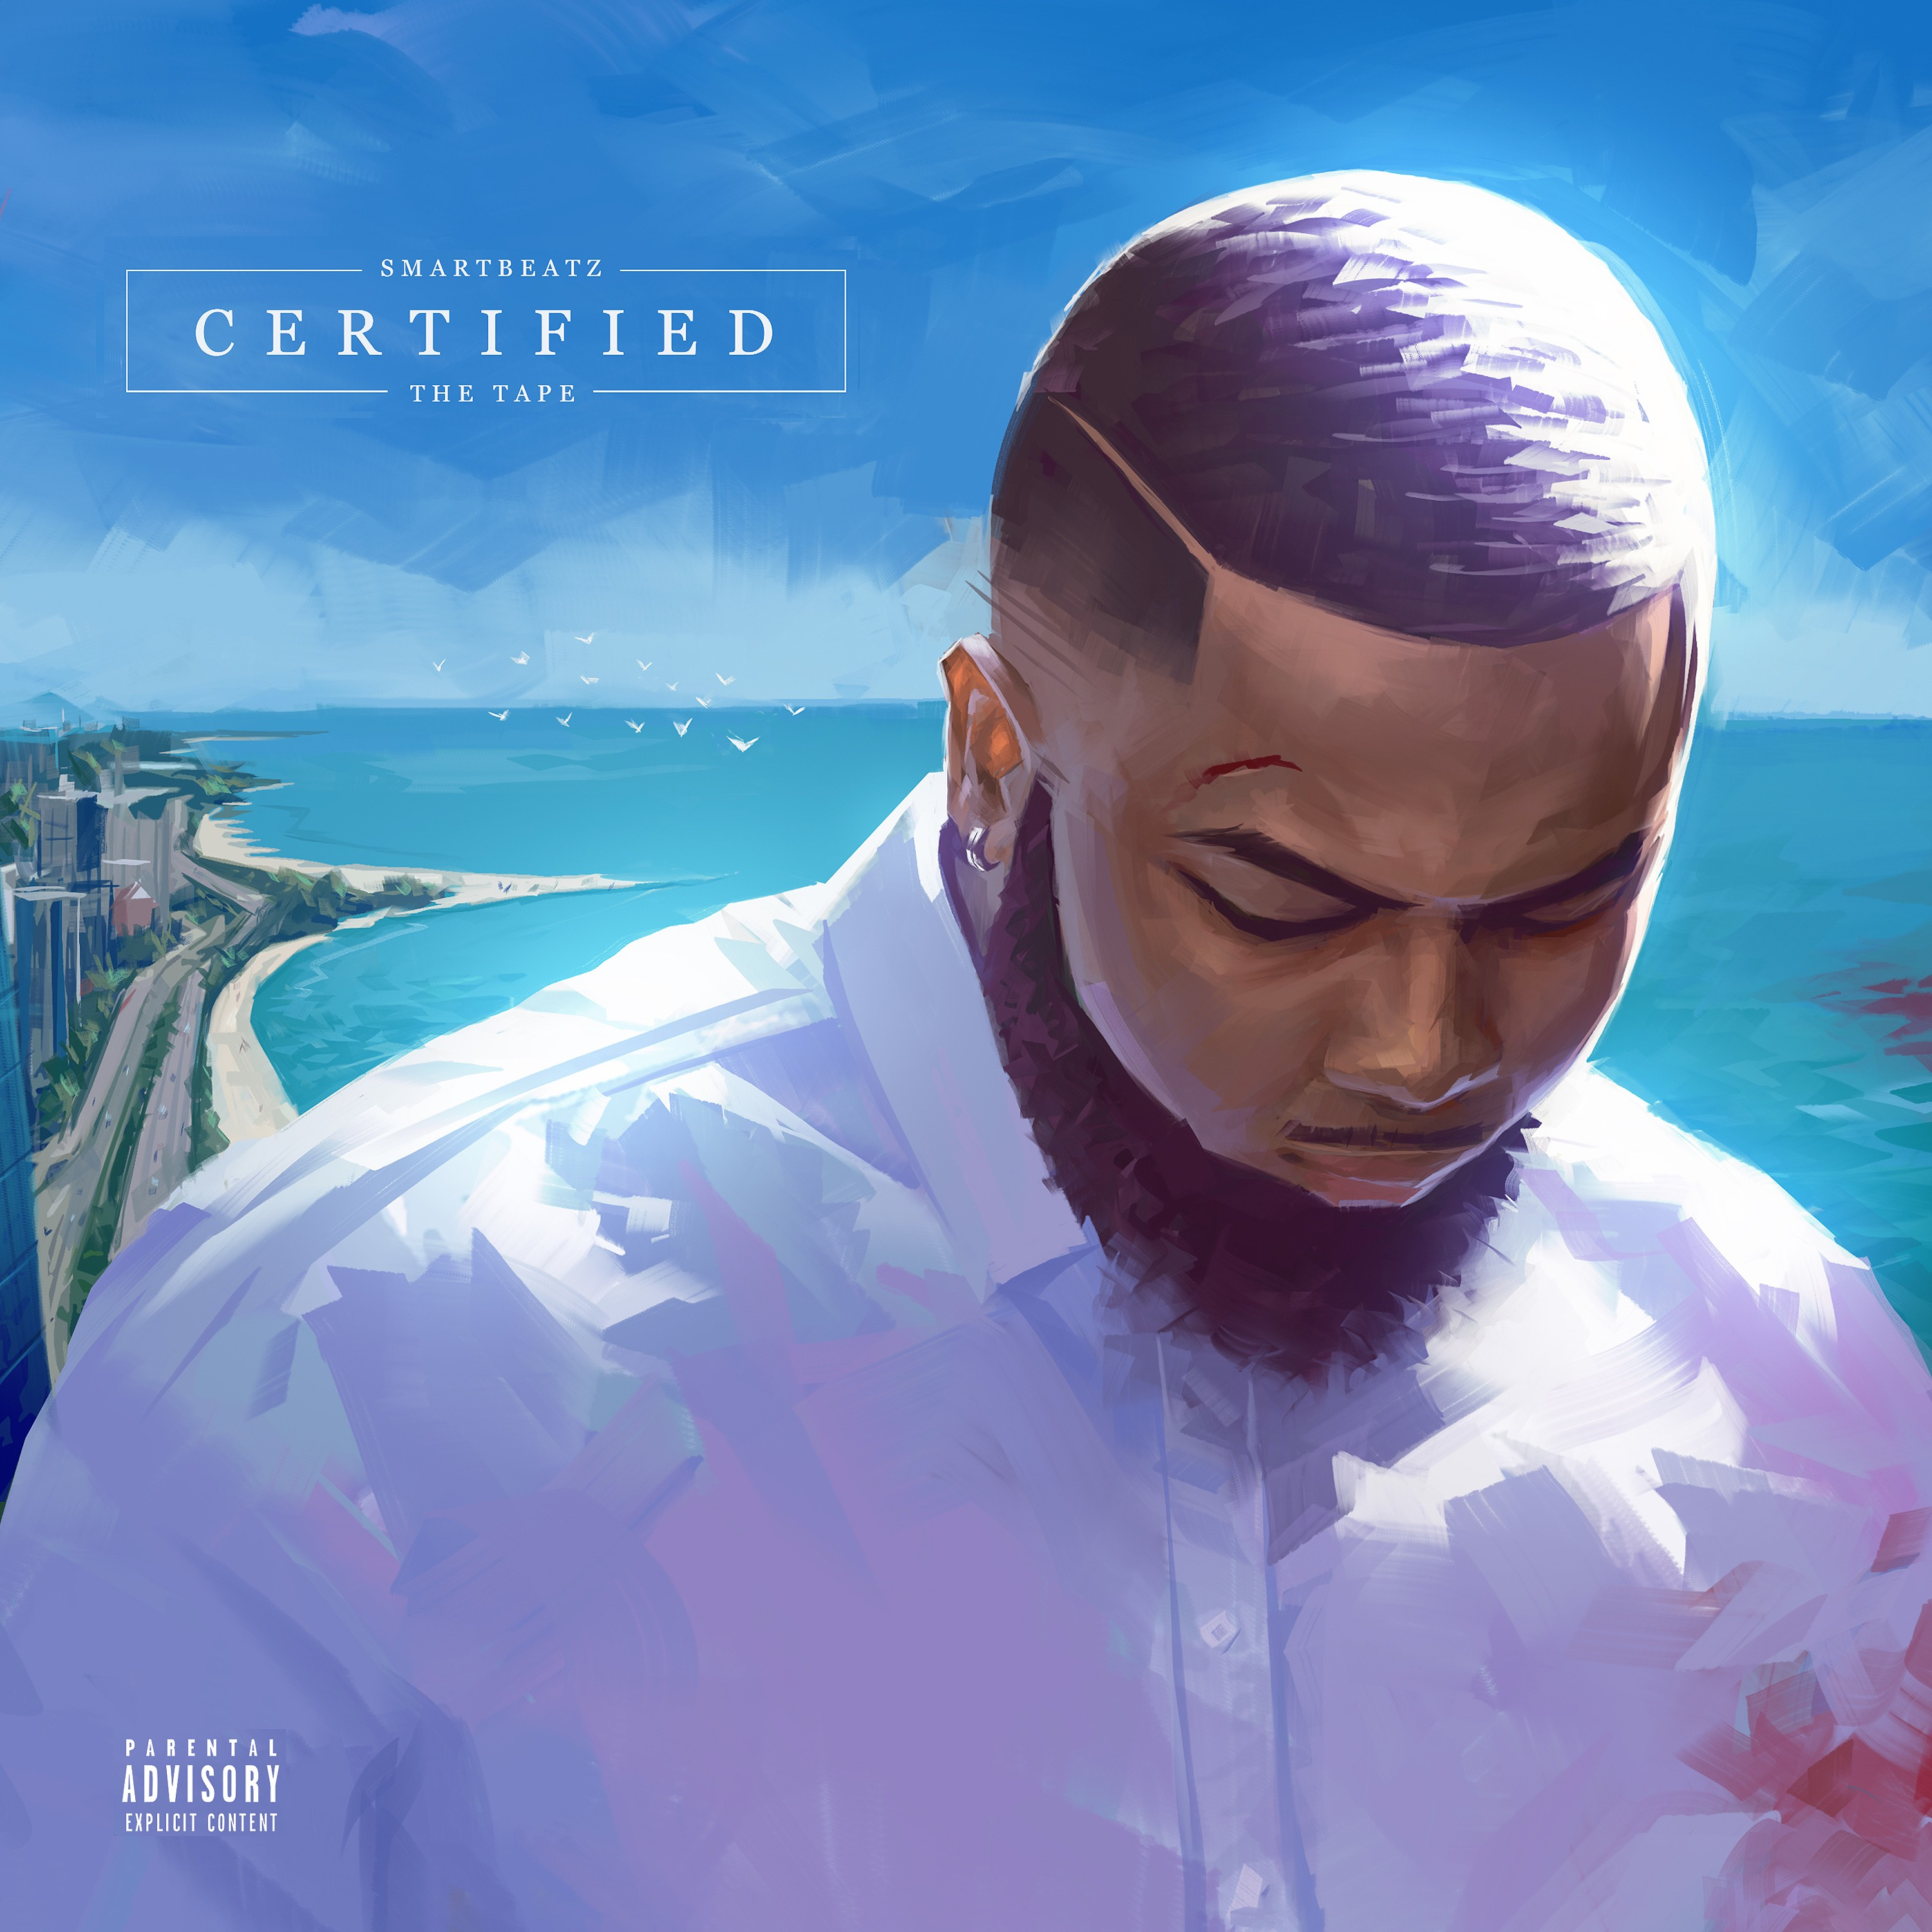 Smartbeatz Certified Artwork